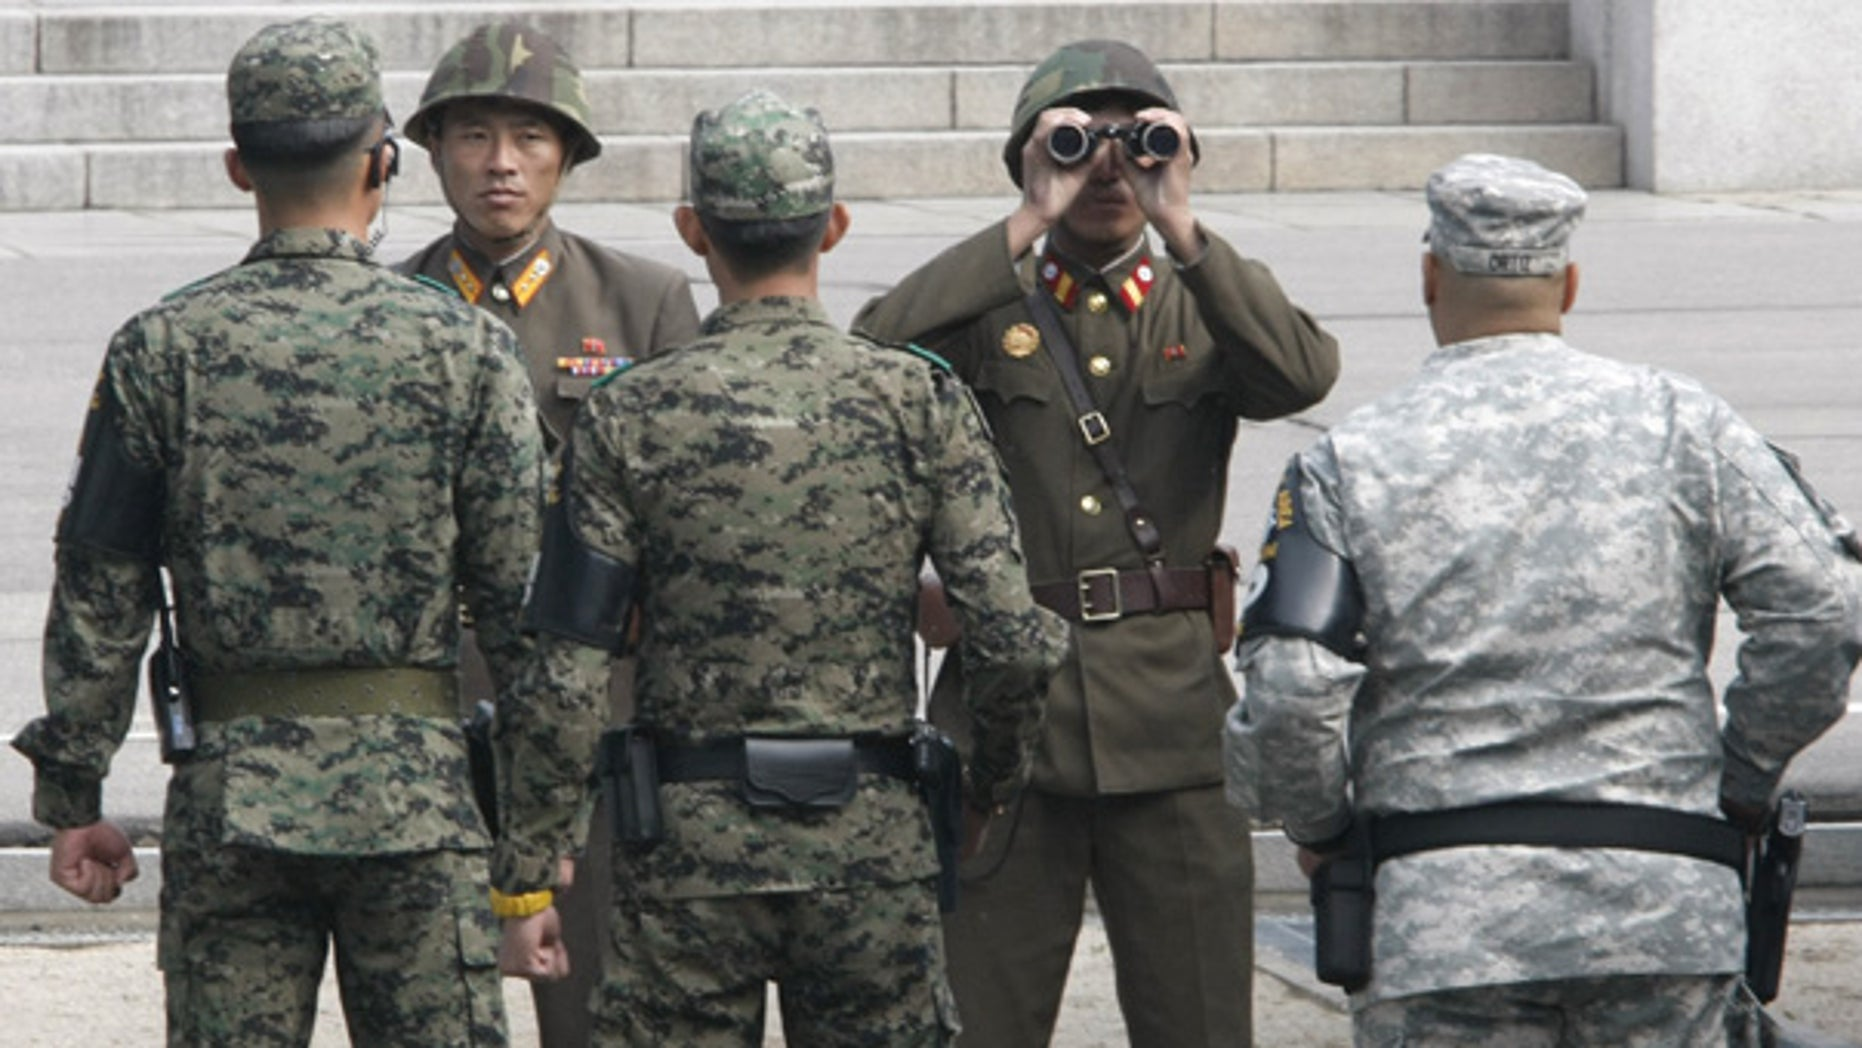 Oct. 20: North Korean soldiers look across the border as South Korean and U.S. Army soldiers stand guard.